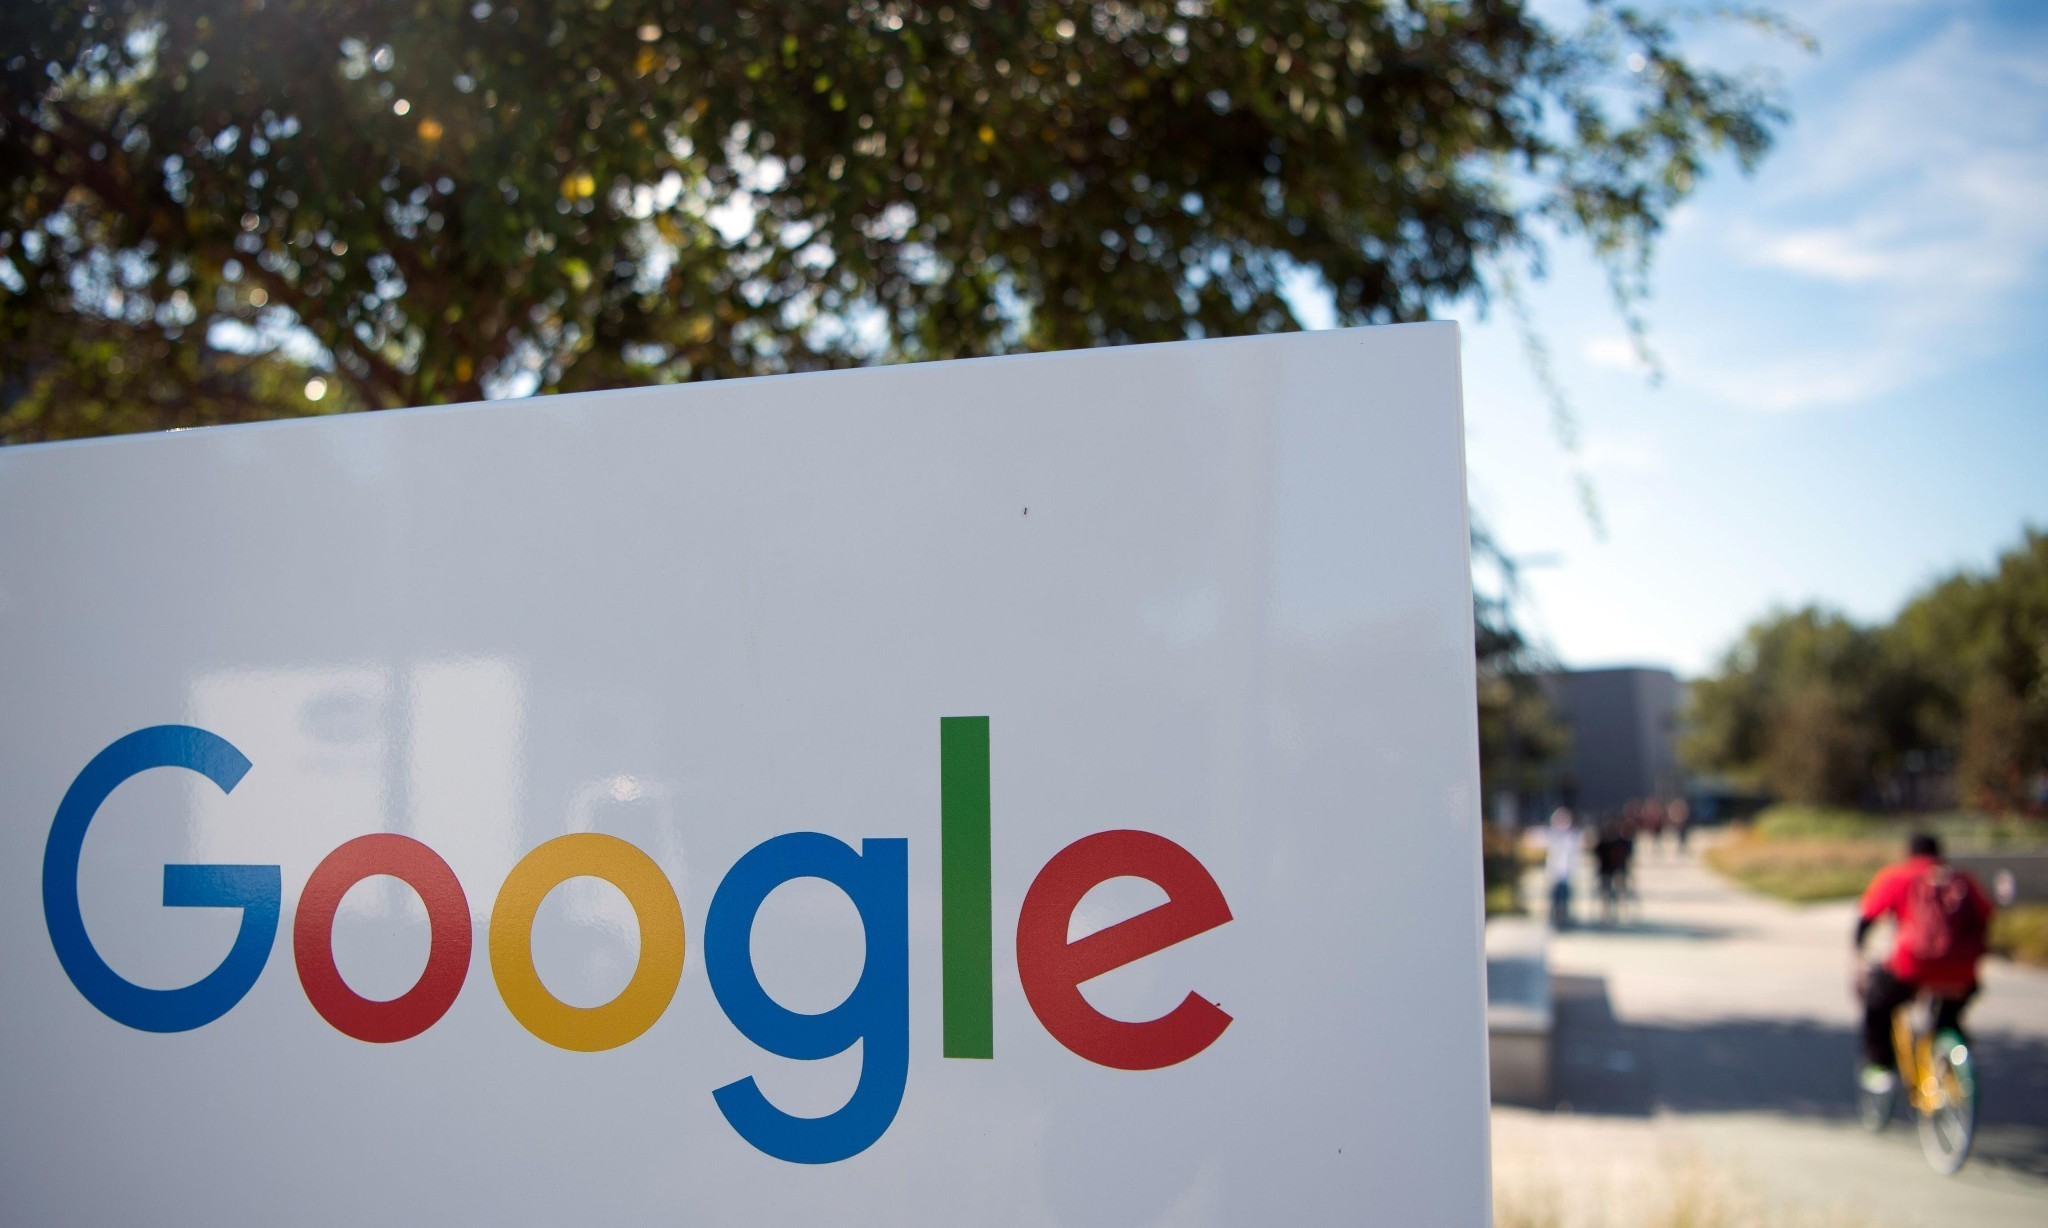 Google to display fact-checking labels to show if news is true or false